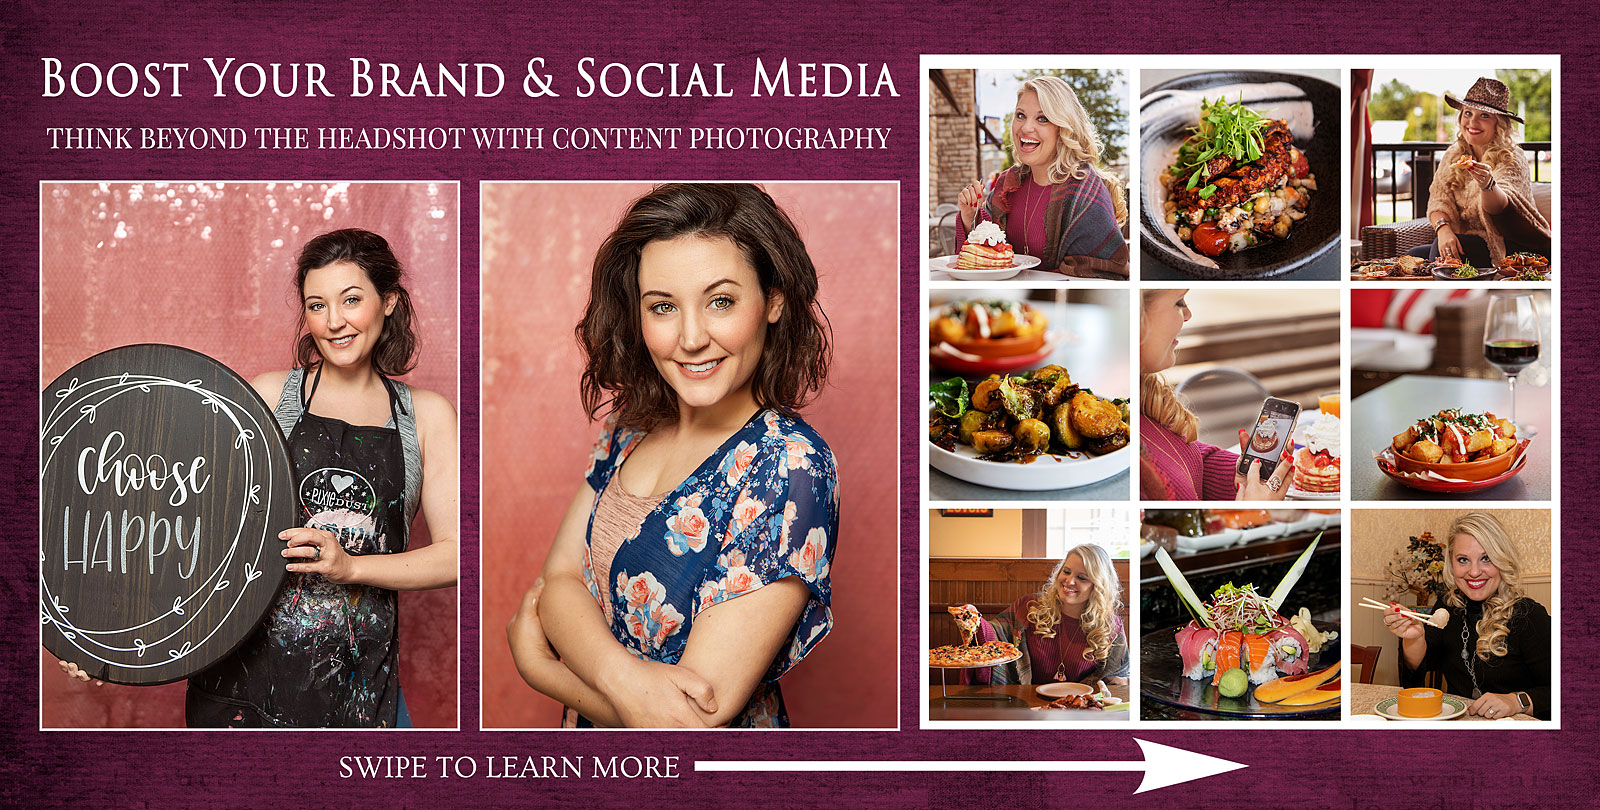 Brand & Social Media images showing headshots and more